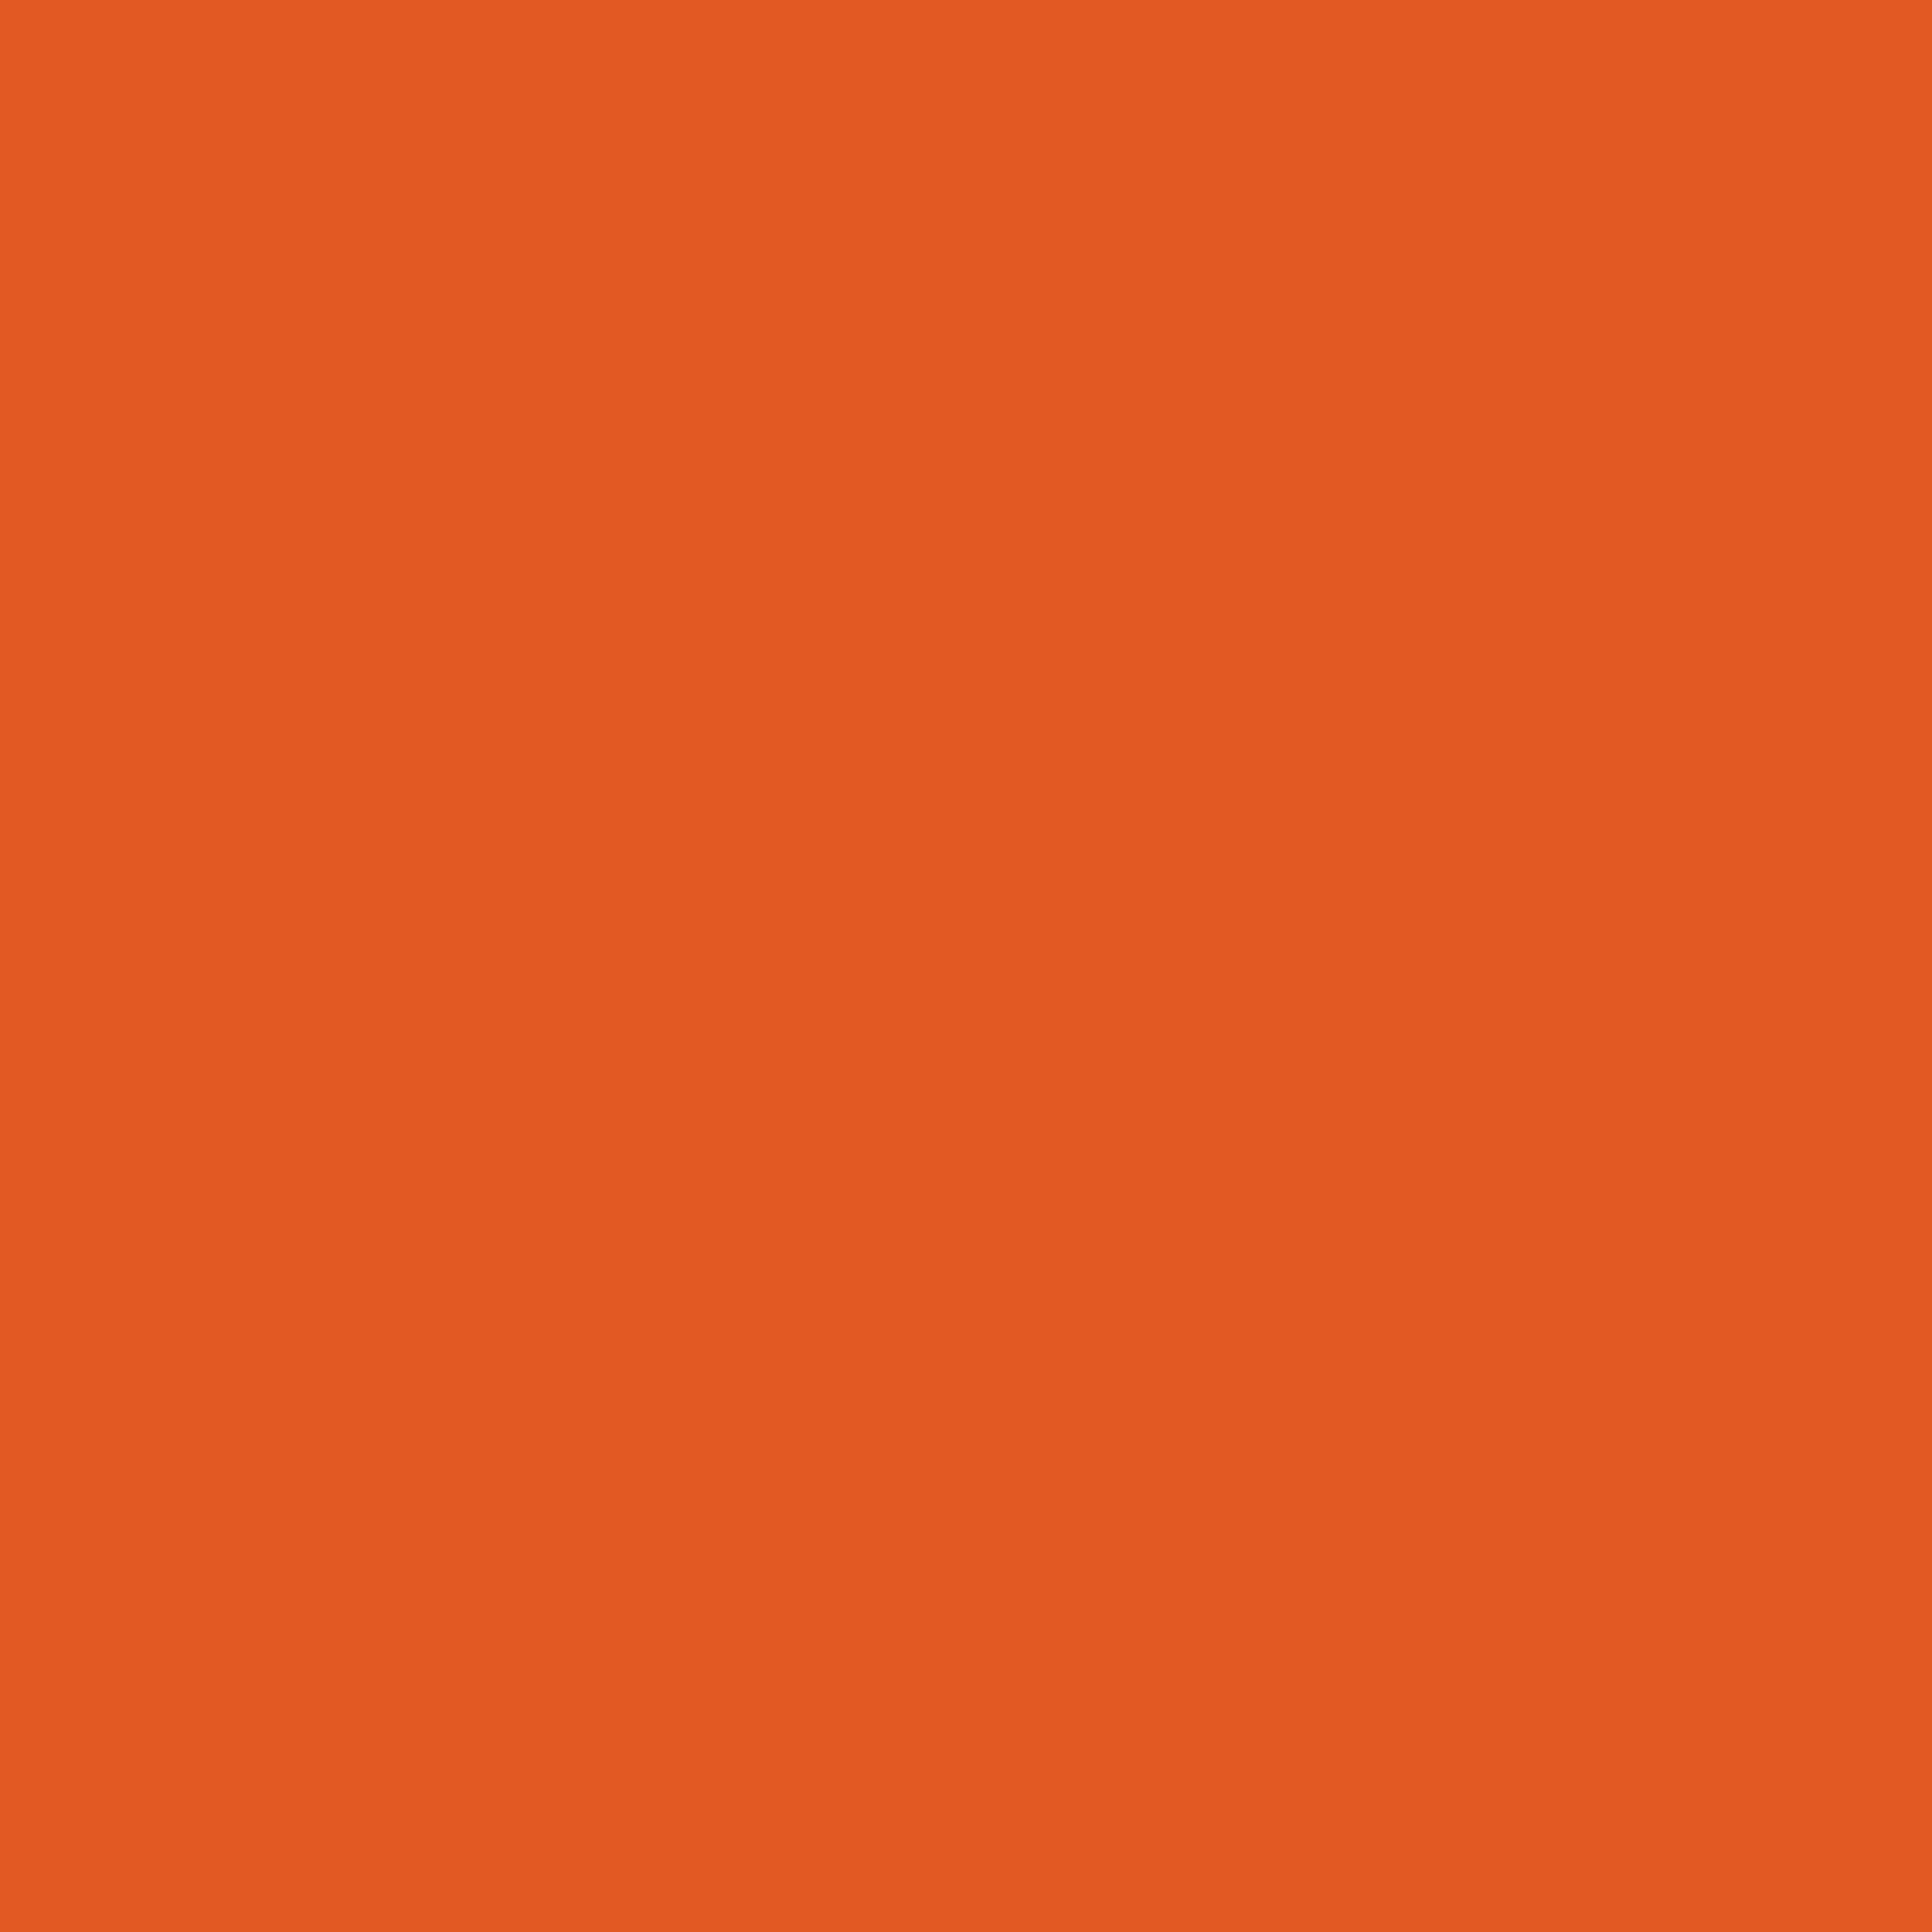 3600x3600 Flame Solid Color Background